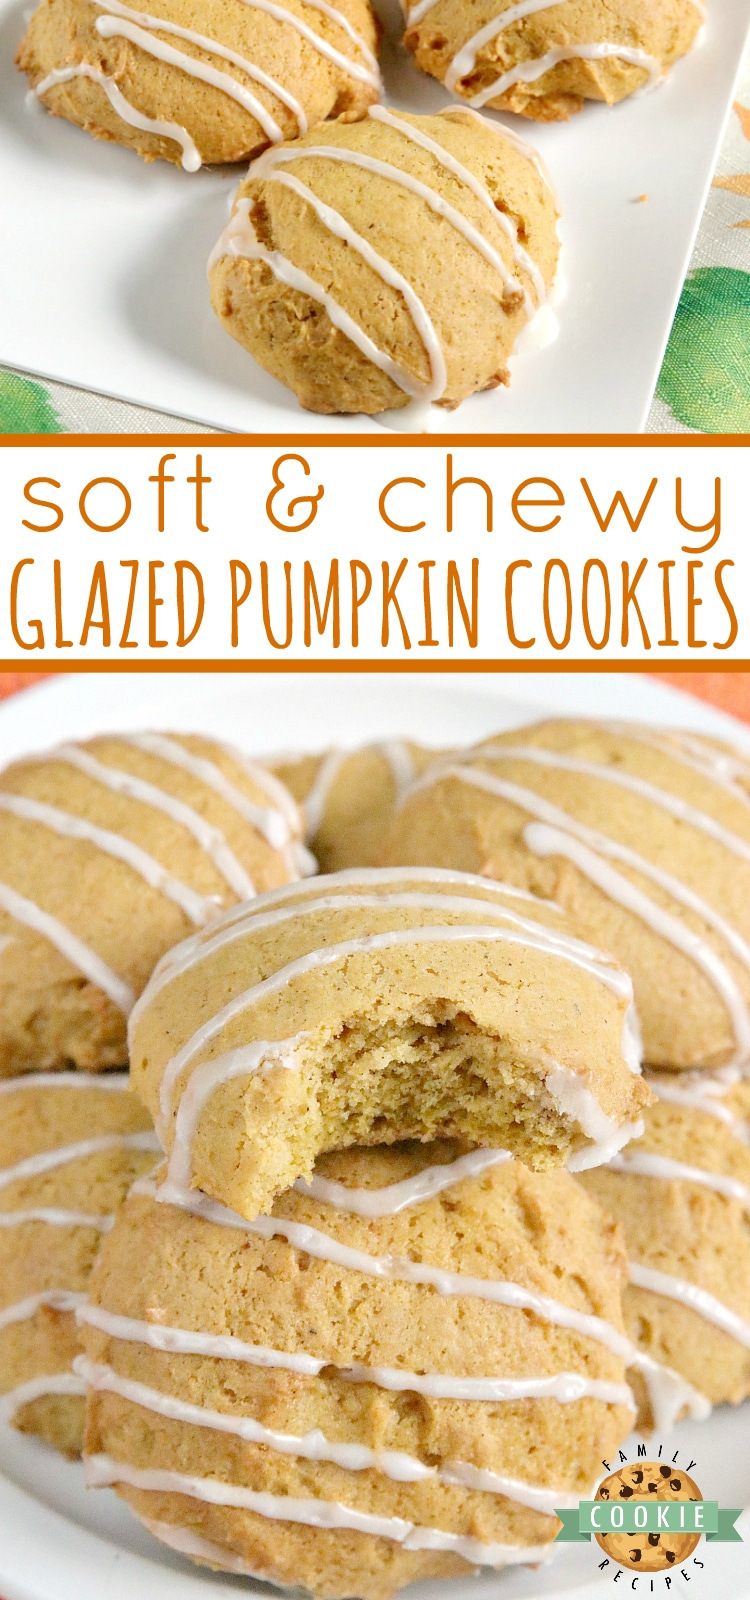 Glazed Pumpkin Cookies are soft and chewy and packed with pumpkin, nutmeg and cinnamon. This delicious pumpkin cookie recipe is easy to make and is even more delicious with the simple vanilla glaze drizzled on top.